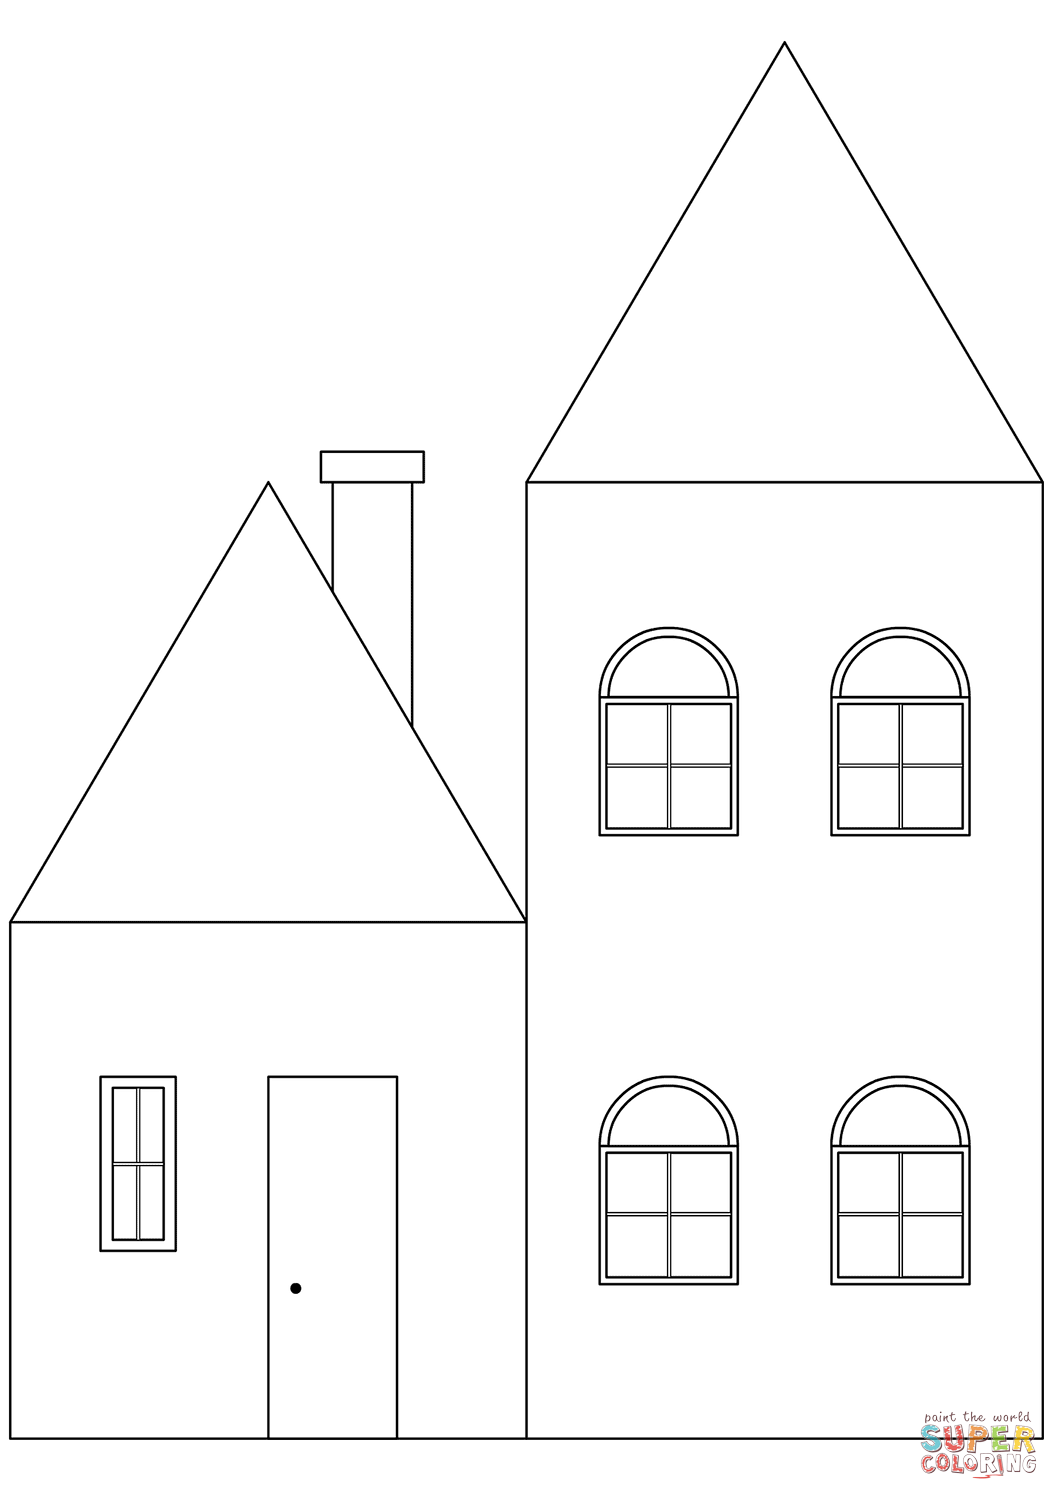 coloring image of house simple house coloring page free printable coloring pages coloring house of image